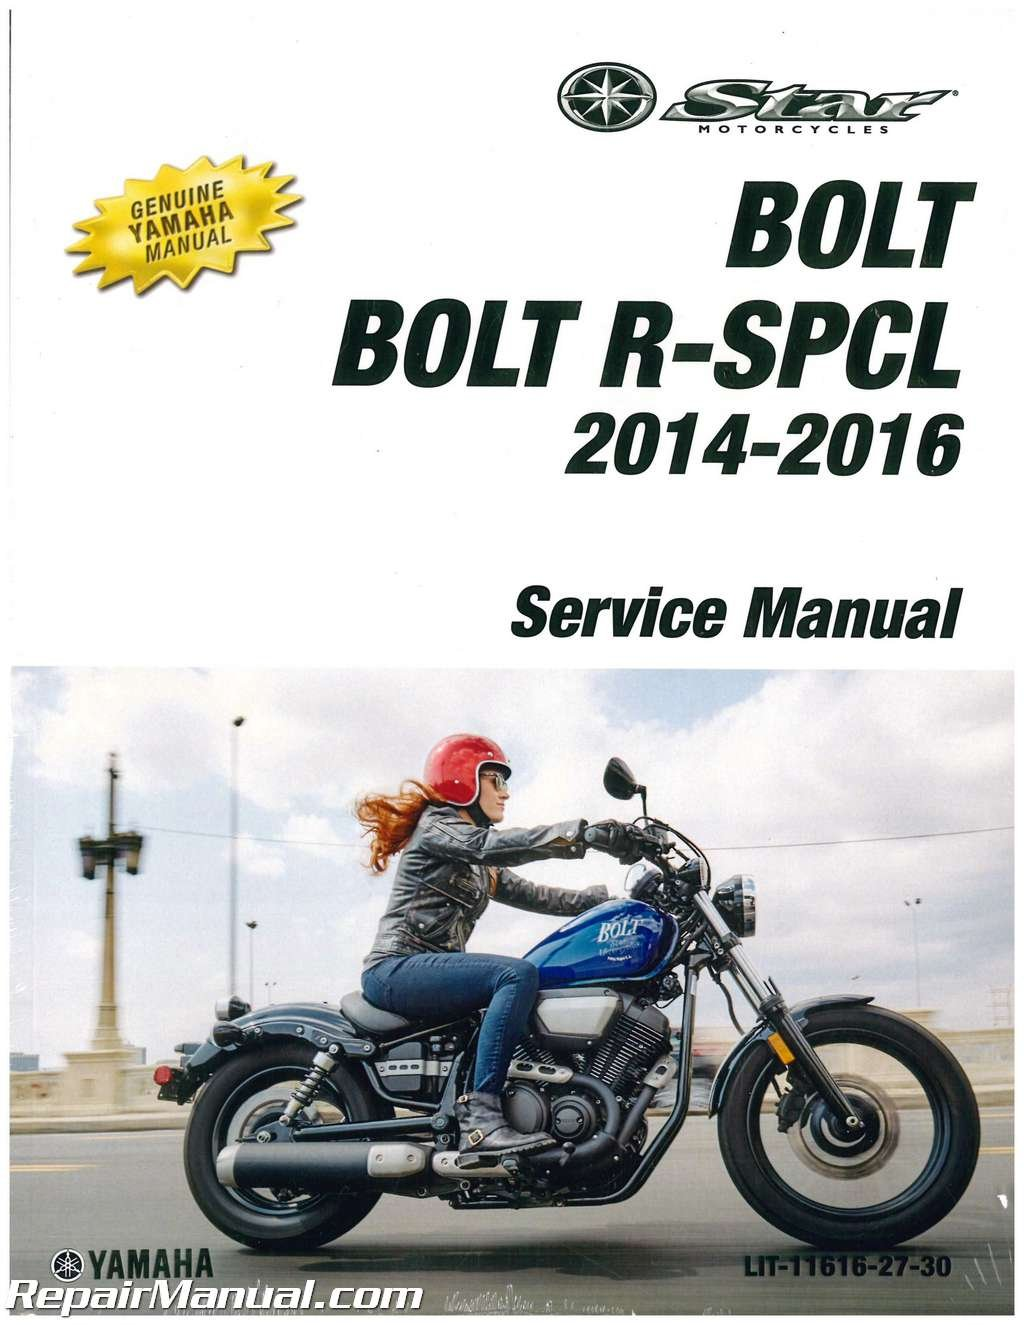 LIT-11616-27-30 2014 - 2015 Yamaha XVS95C BOLT Motorcycle Service Manual:  Manufacturer: Amazon.com: Books